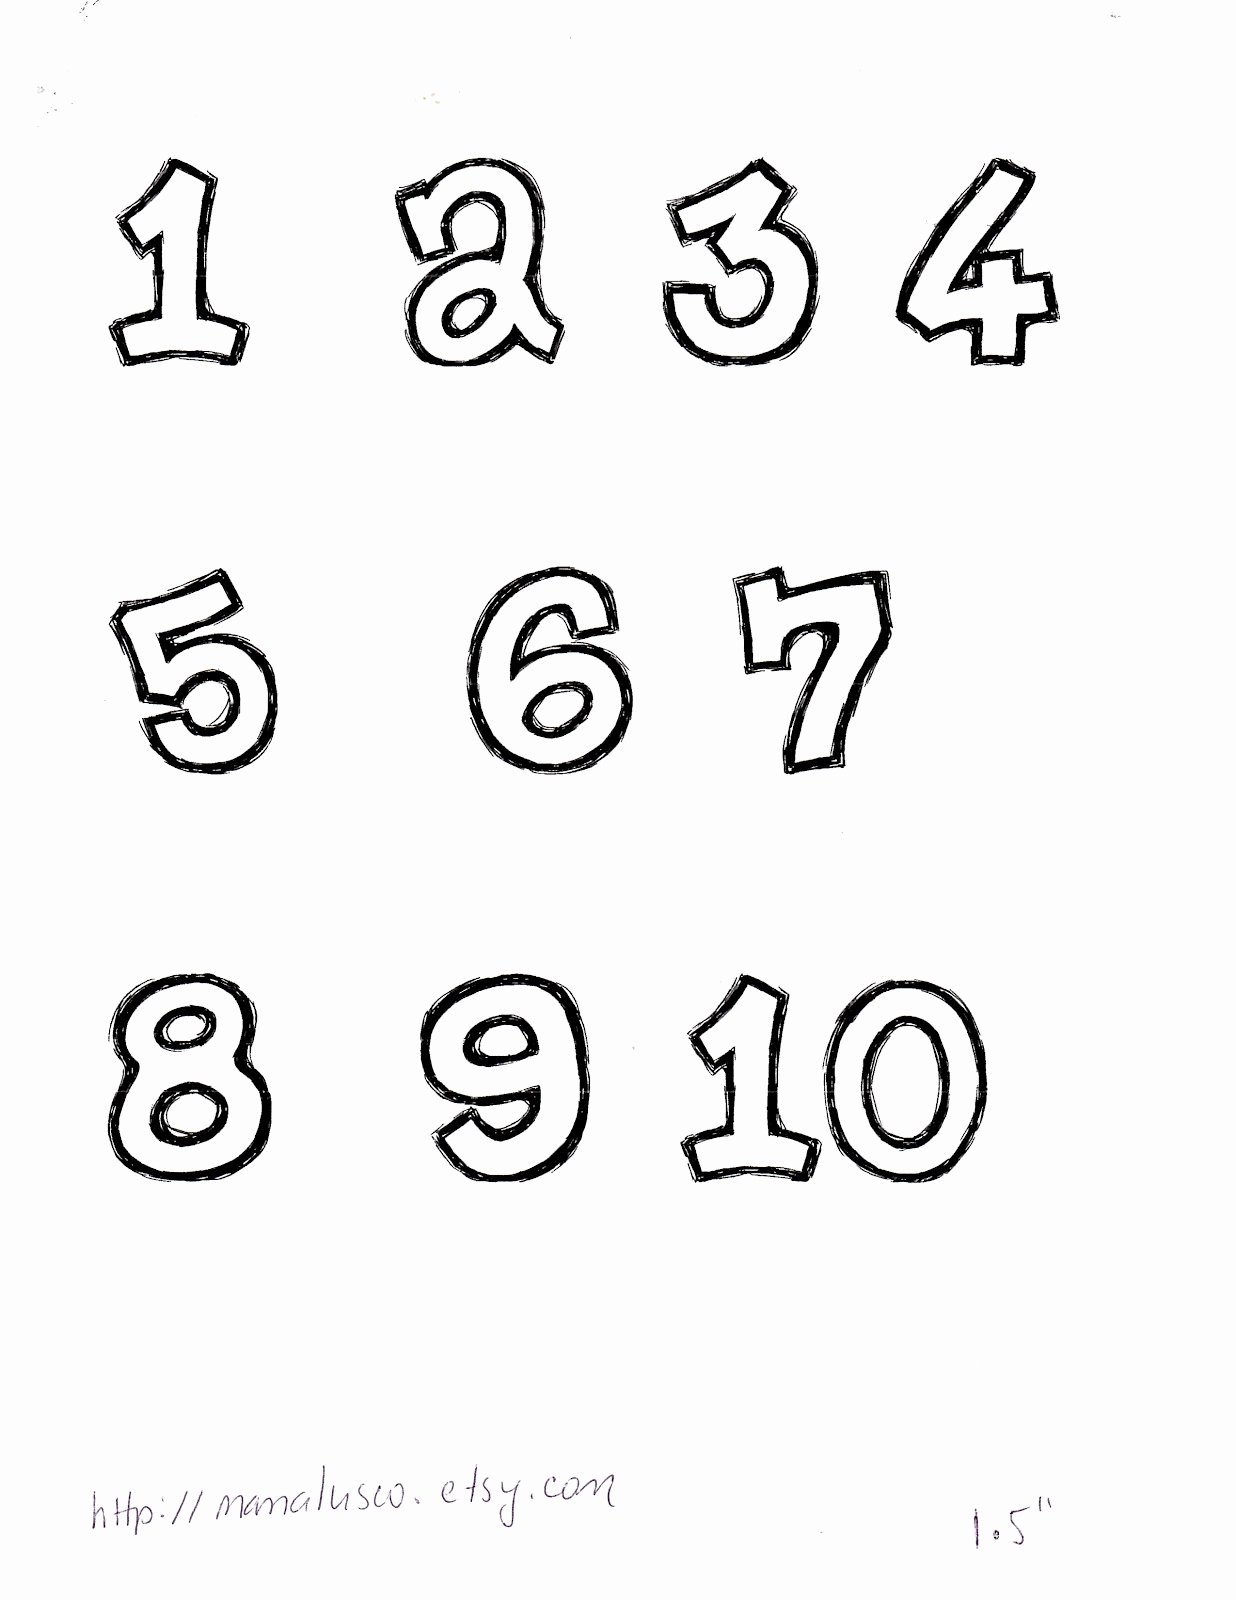 Number Templates to Print New Mama Lusco Handmade Free Number Templates 1 10 for Applique